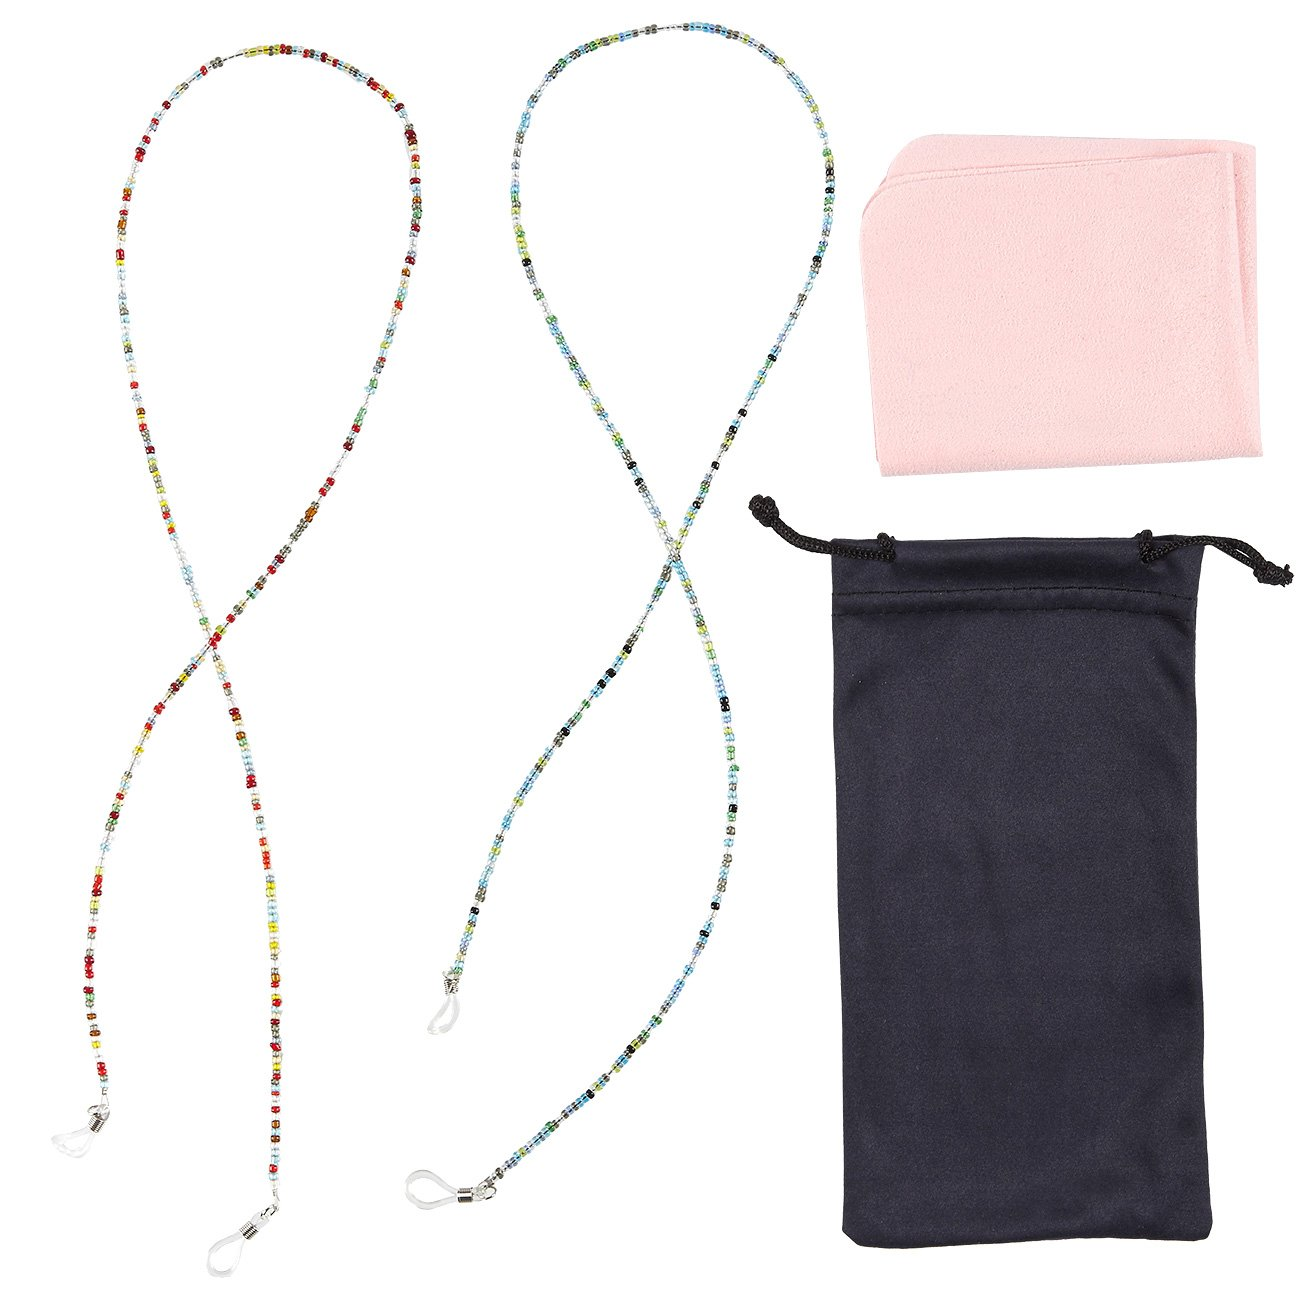 Eyeglass Chain - 4-Piece Set Beaded Glasses Strap, Retainer Cord with Beads, Microfiber Cloth and Polyester Pouch, Ideal for Sunglasses, Reading Glasses, Multicolor, 27 x 27.5 Inches